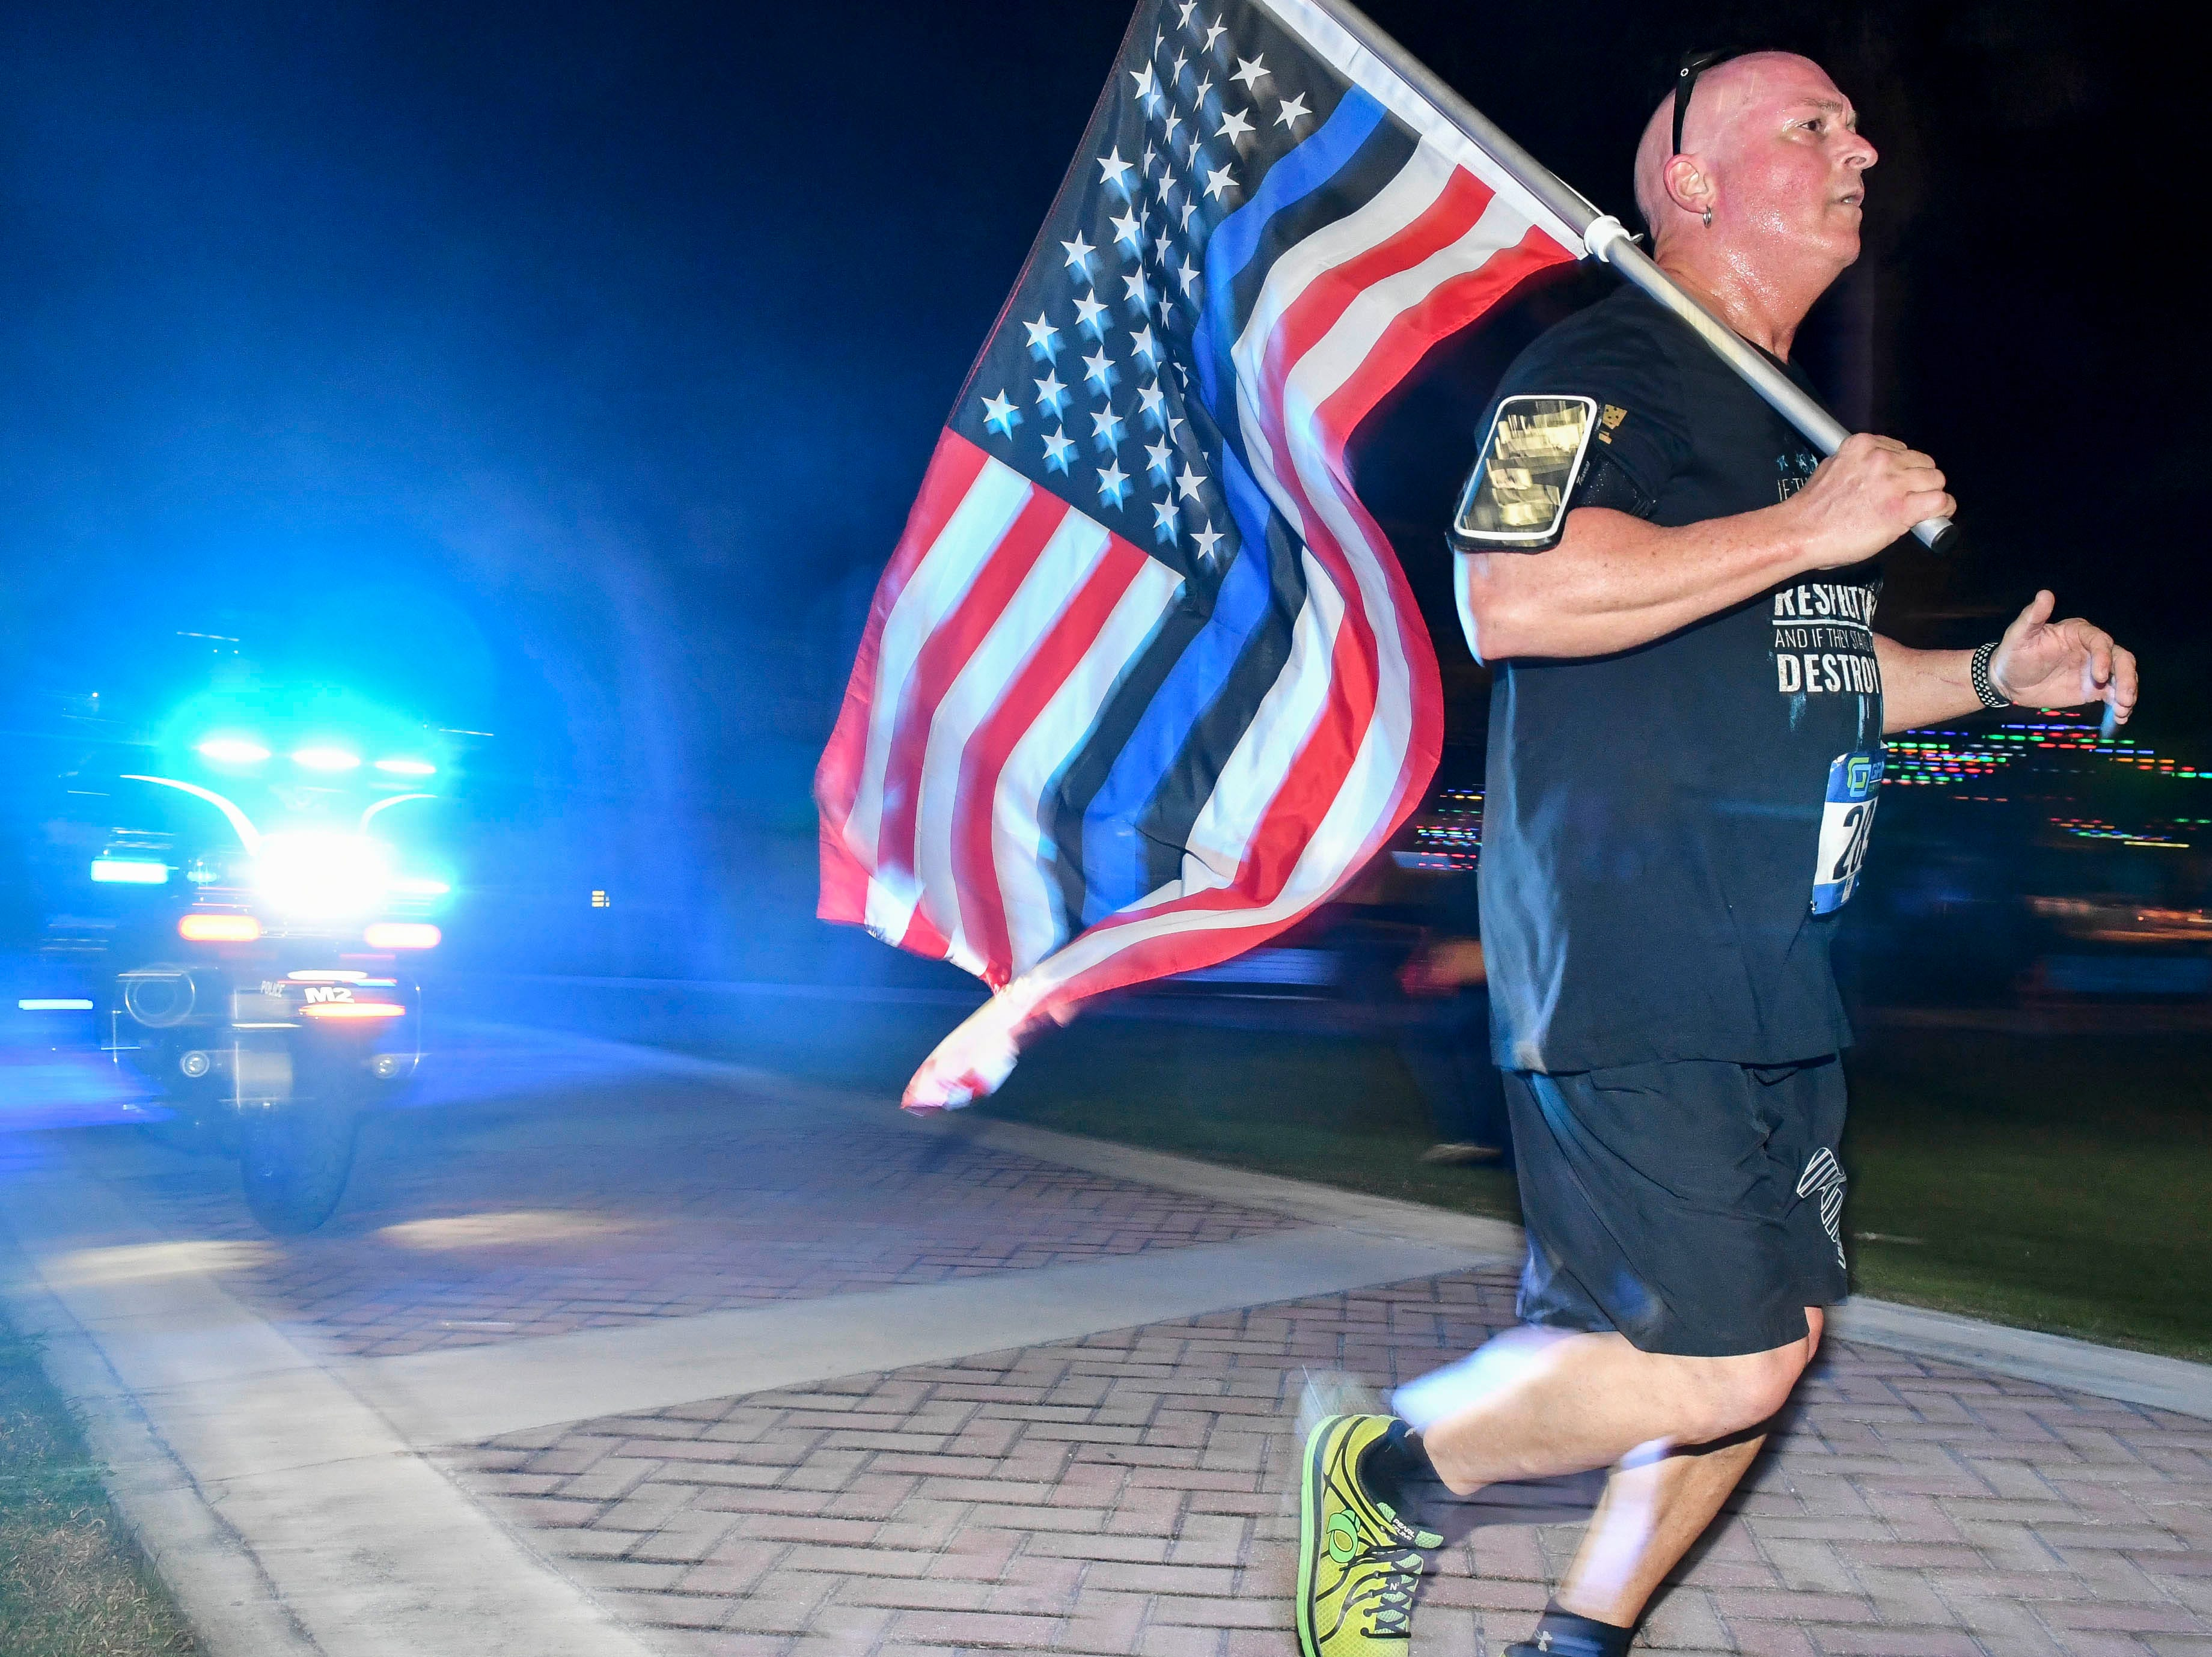 James Dean carries a flag as he runs in the inaugural Game On Run for Responders 5K Run/Walk run through the streets of Cocoa Village Saturday.  Proceeds from the event benefit Survive First, a nonprofit that aids first responders and their families with mental health issues.